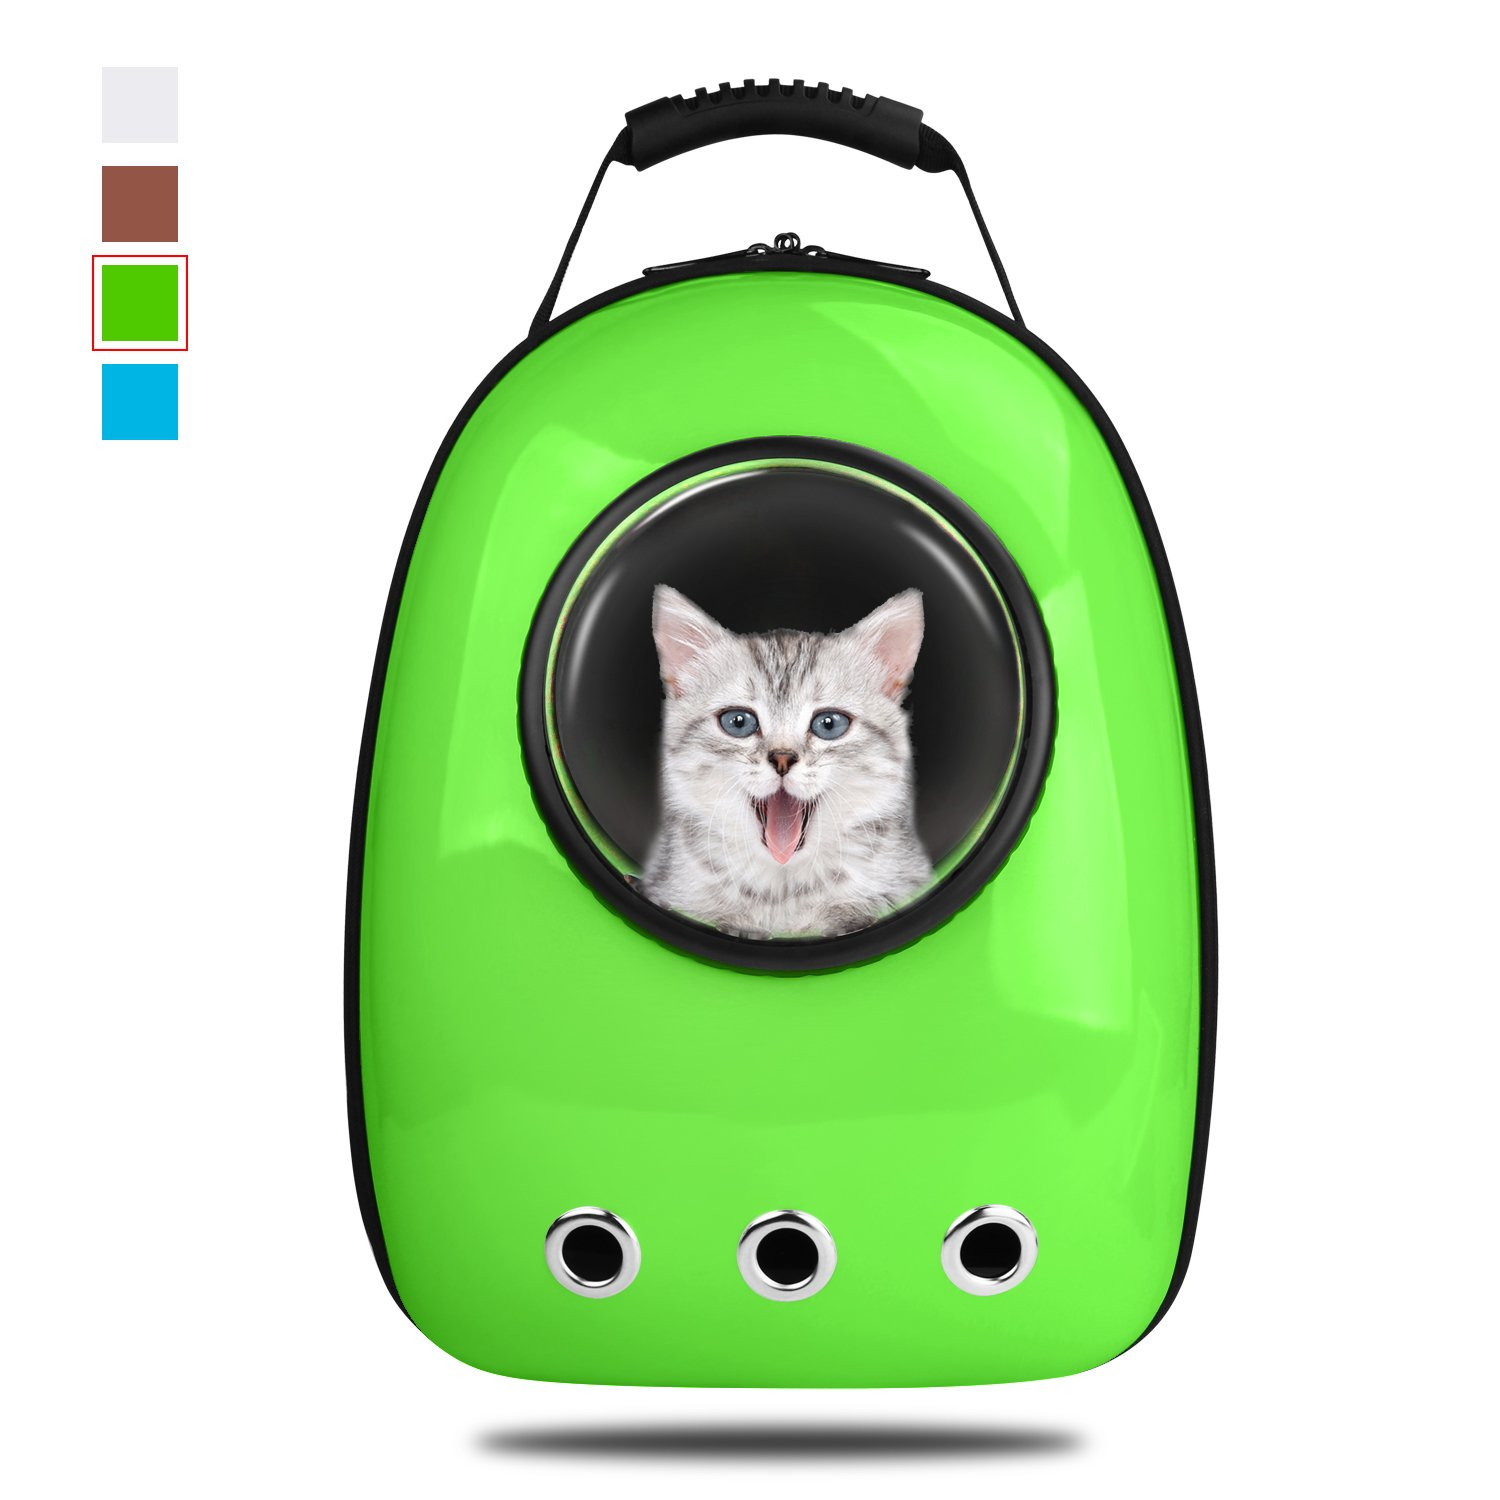 Green Anzone Cat Space Capsule Carrier Backpack, Pet Bubble Window Tote Bag Portable Lightweight Travel Handbag for Cats Petite Dogs & Small Animals-Green,30L